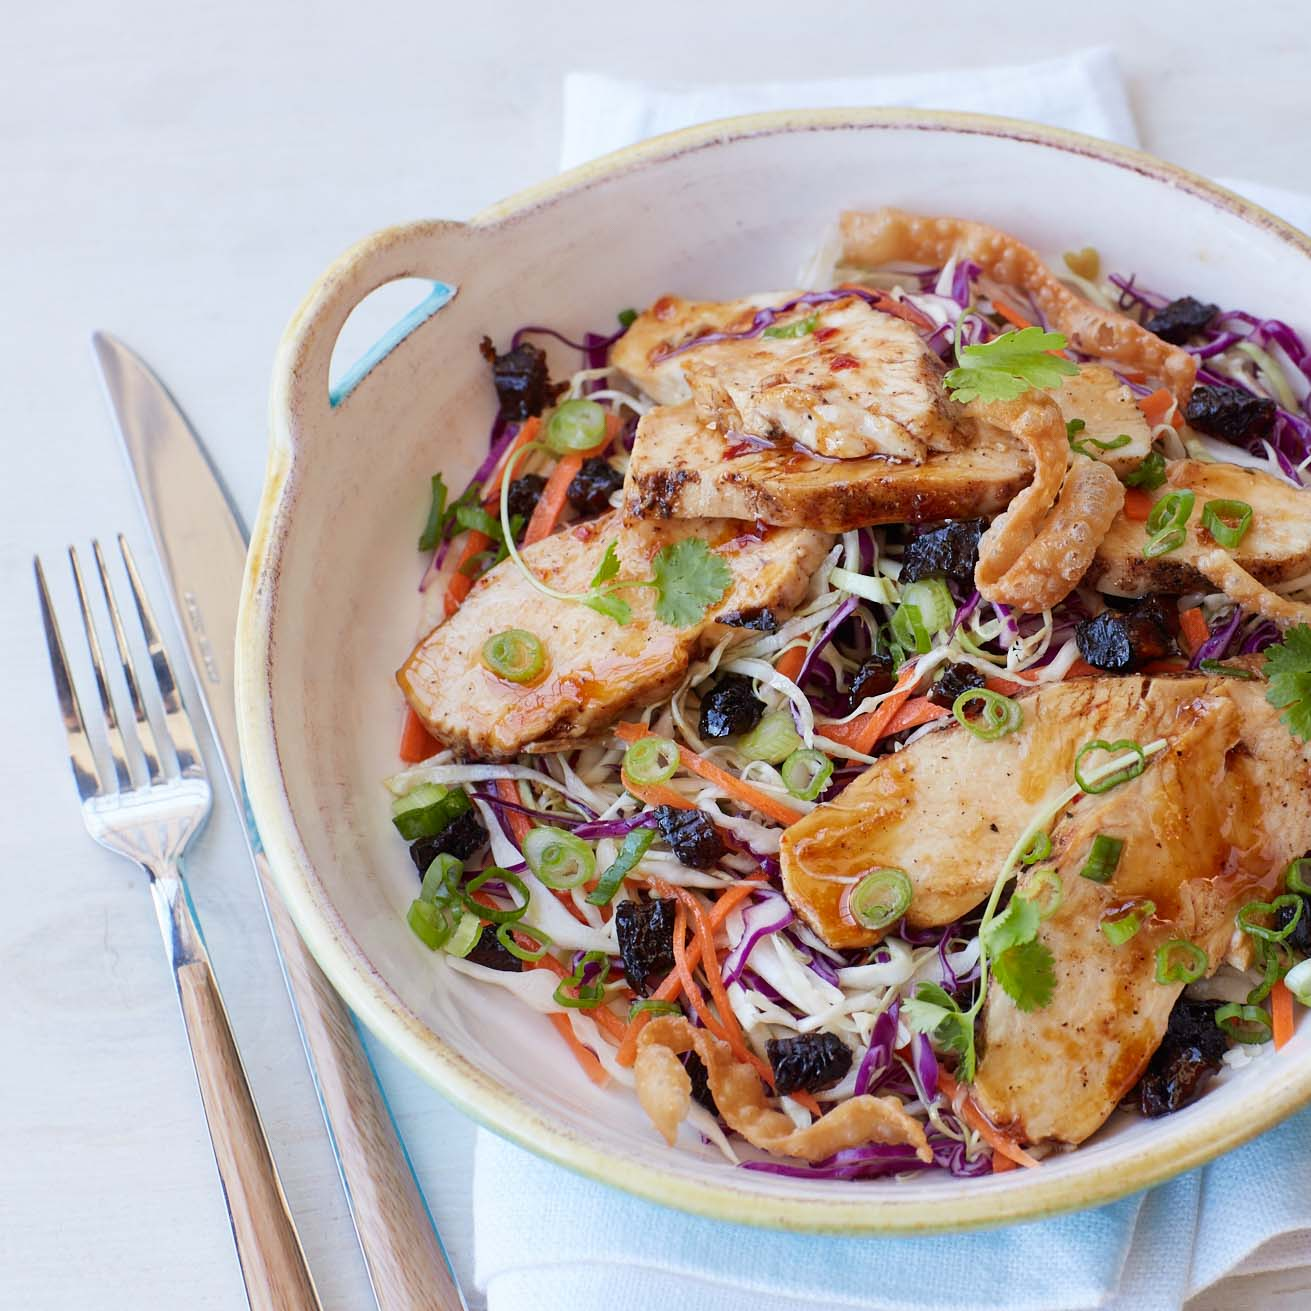 <p>Ginger, soy sauce, diced prunes, and five-spice seasoning come together seamlessly for an update on a classic Chinese chicken salad. Make it gluten-free by leaving out the wonton strips and opting for tamari instead of soy sauce.</p>